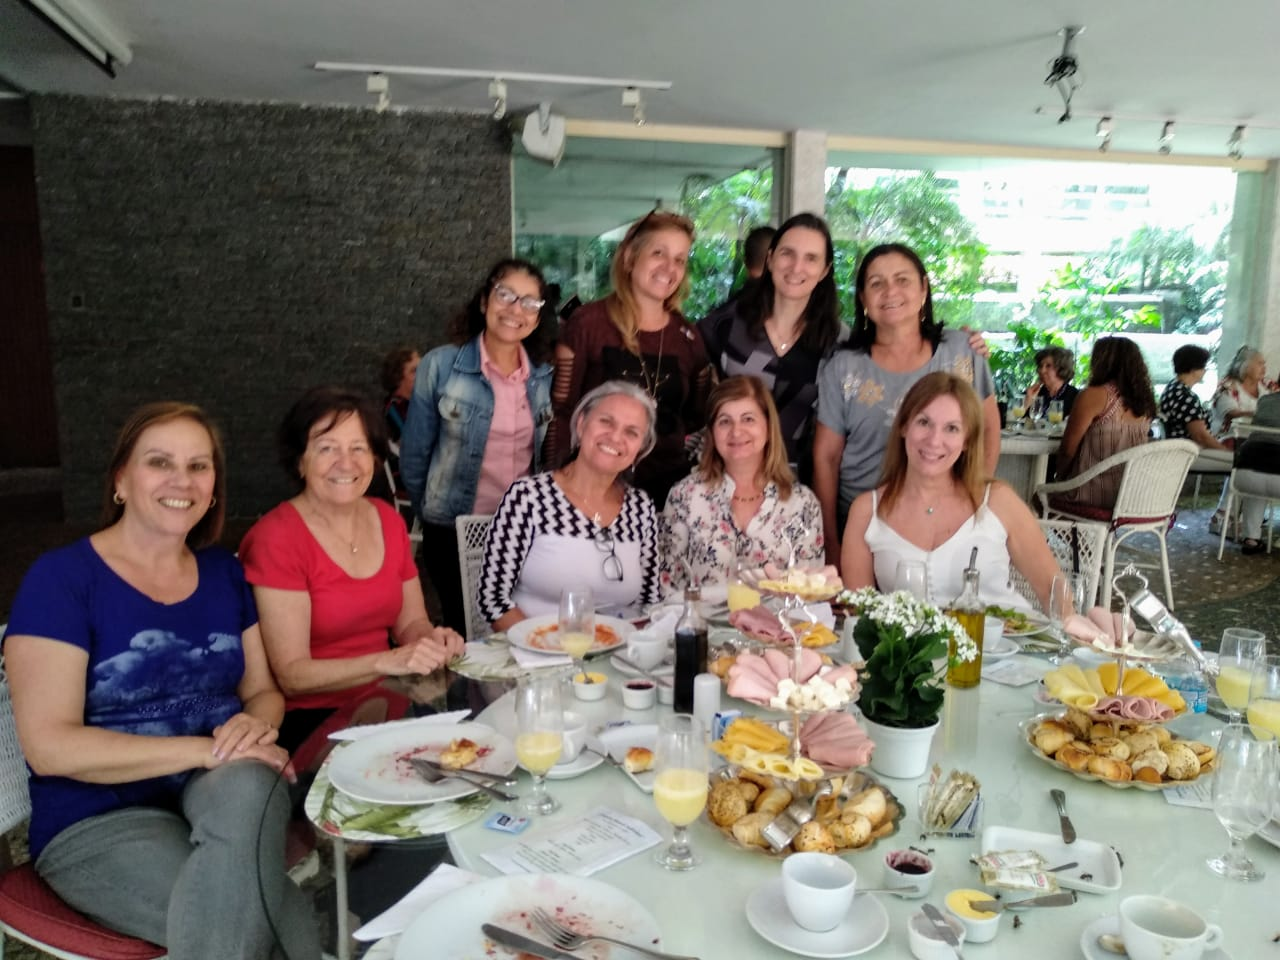 Brunch-CursoIngles-05-12-18 (5).jpeg